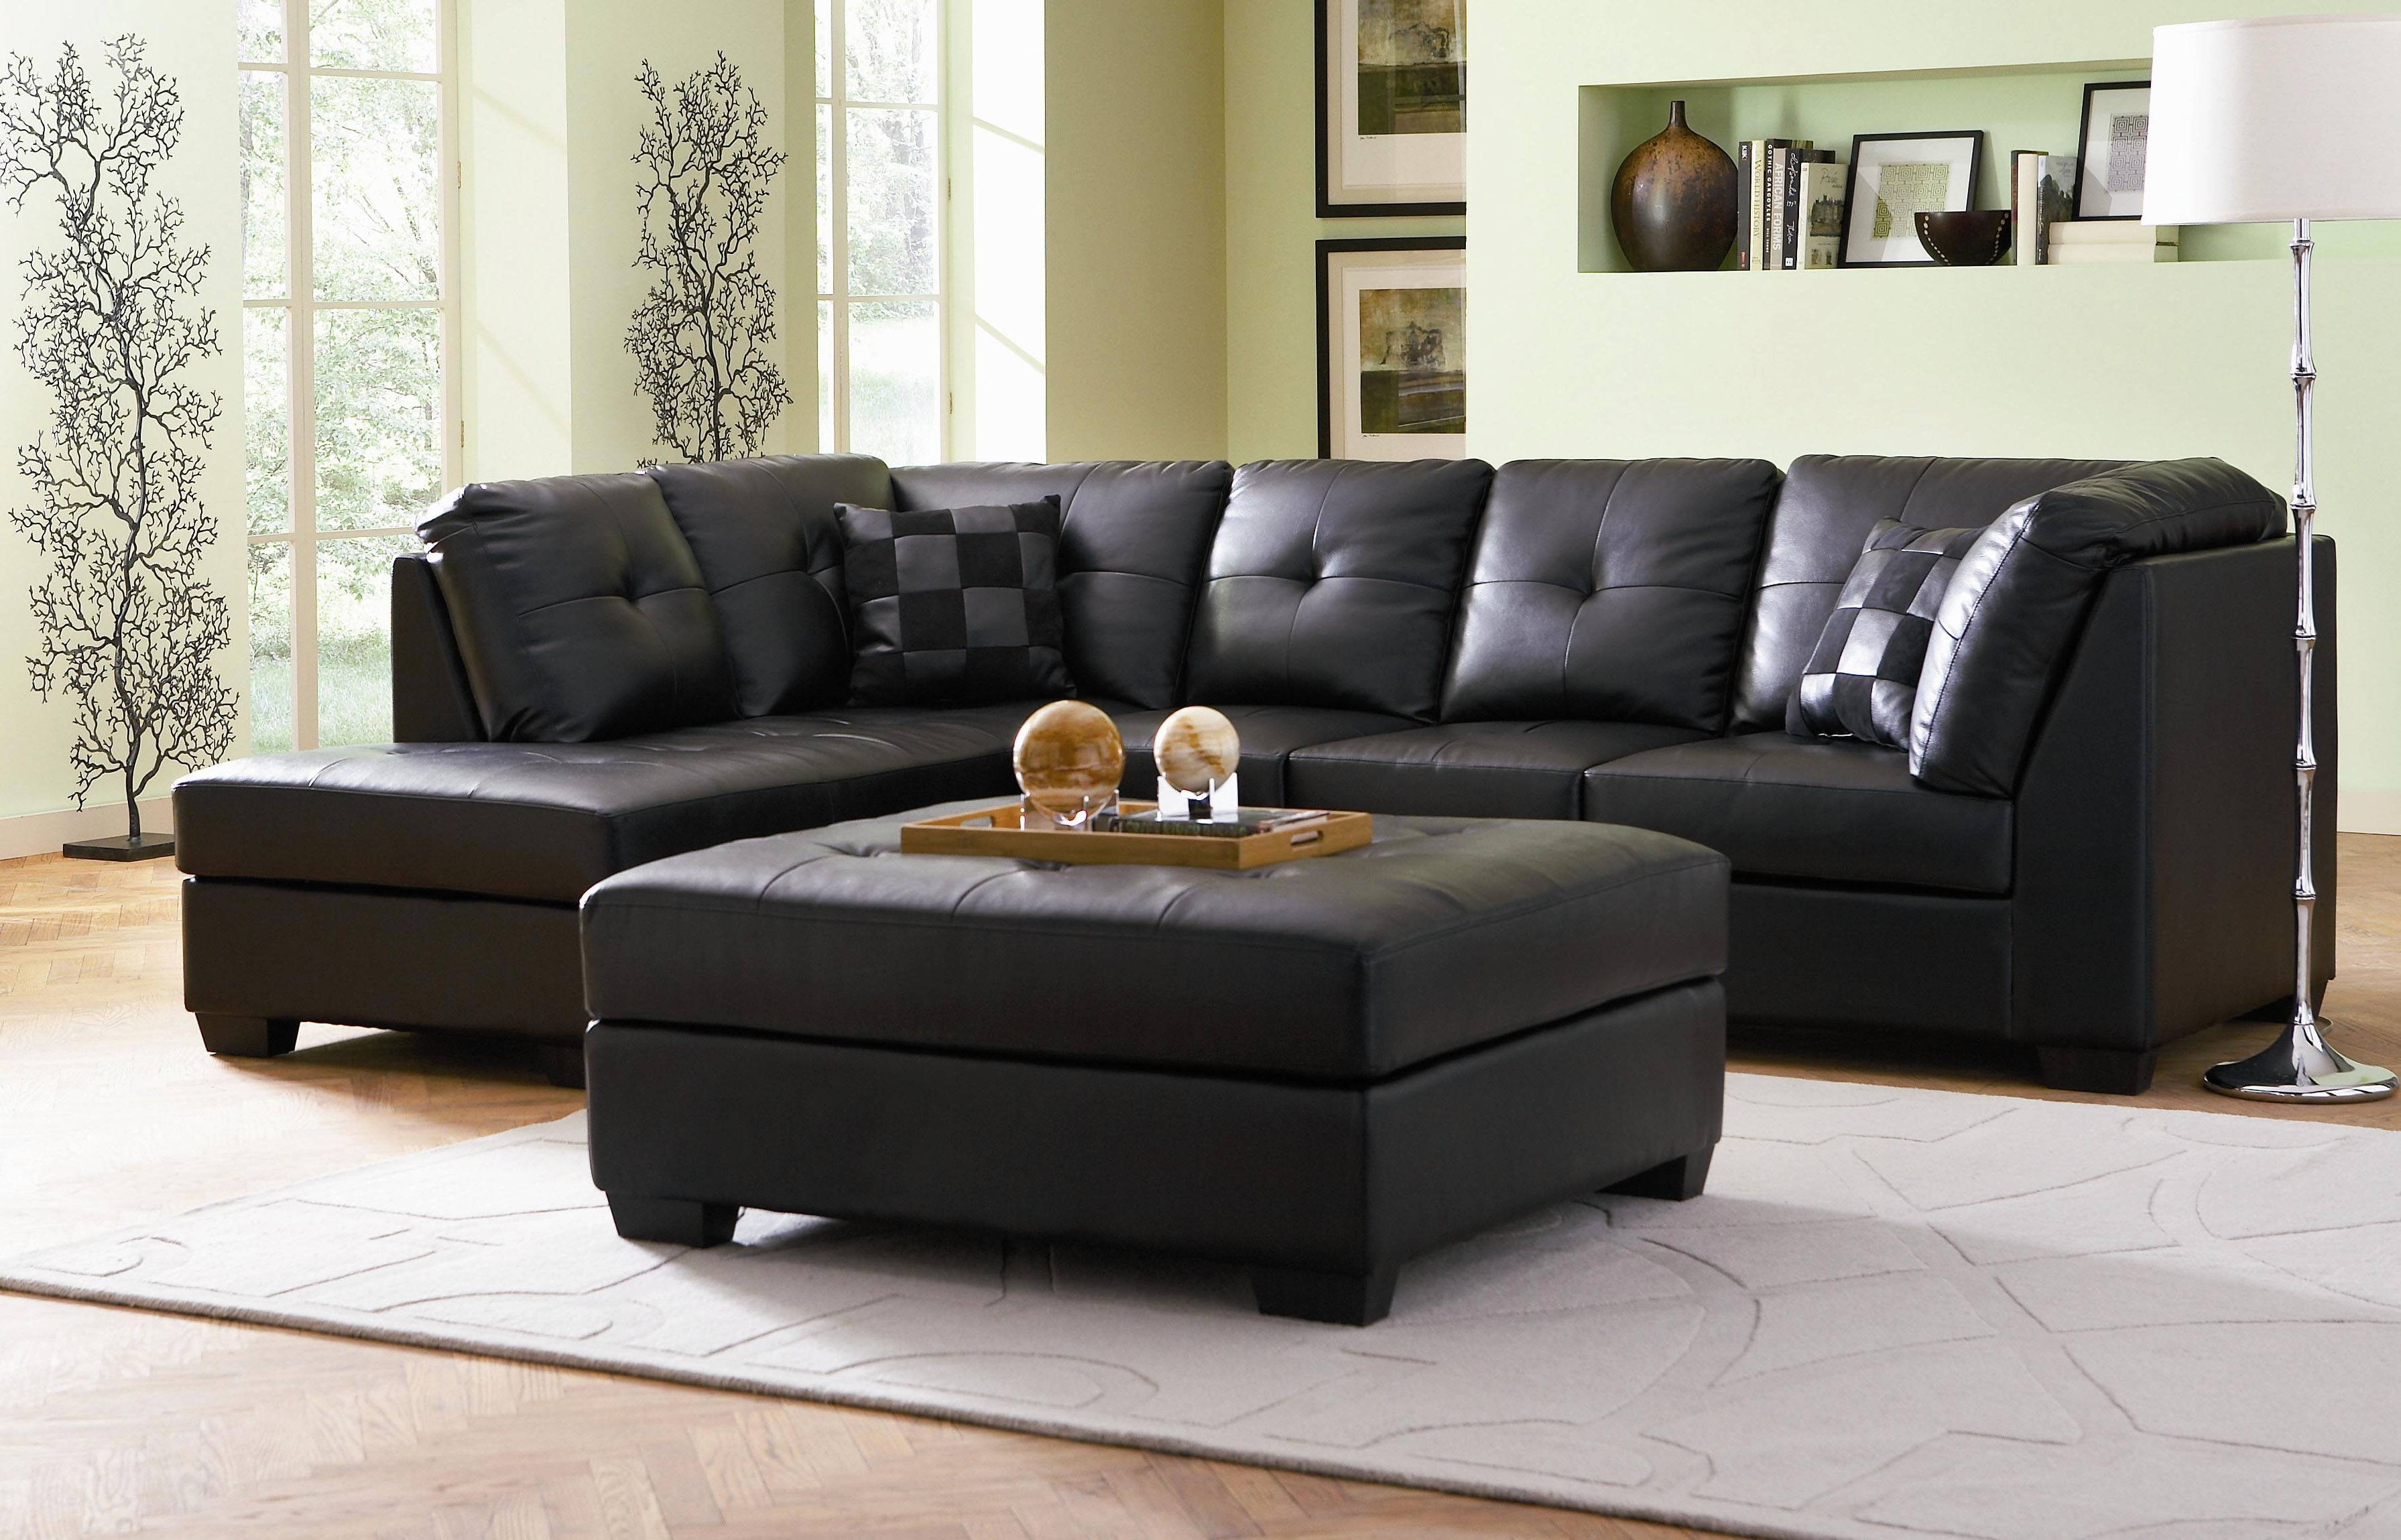 Queen Sofa Sleeper Sectional Microfiber - Hotelsbacau intended for Queen Sofa Sleeper Sectional Microfiber (Image 15 of 25)